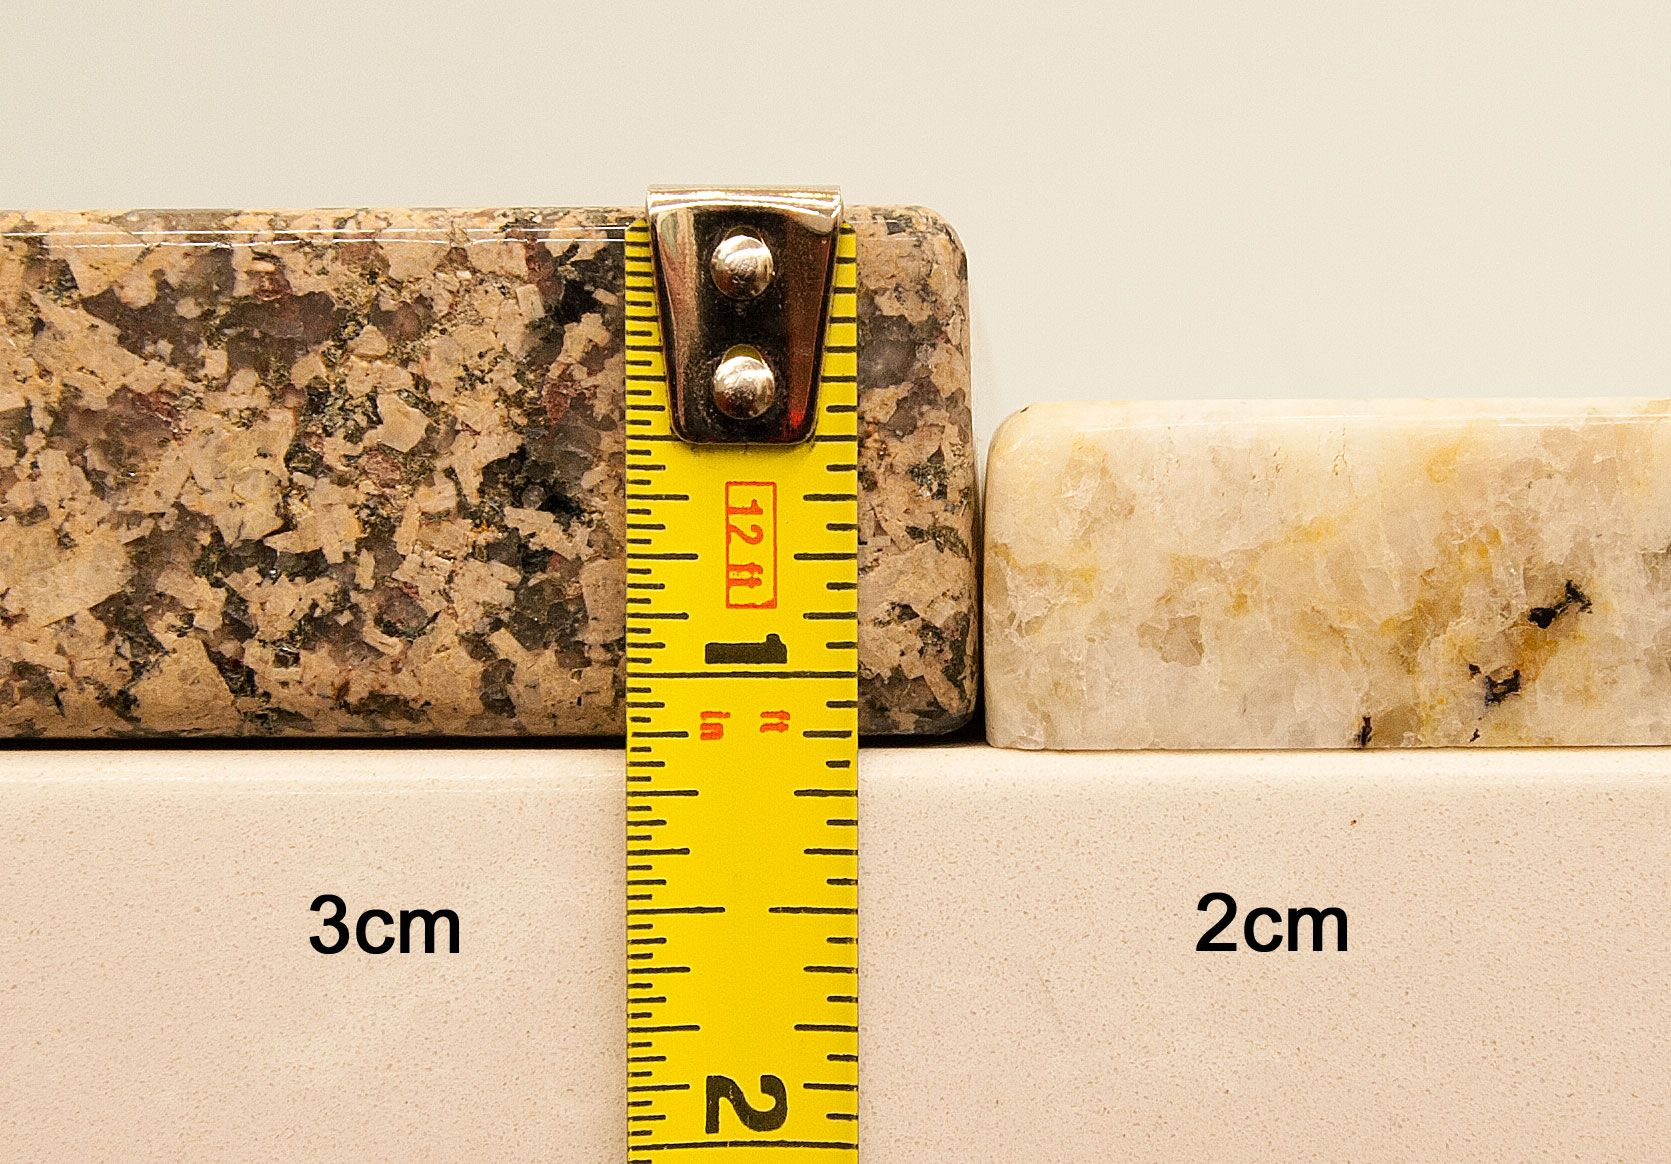 What Is The Difference Between 2 Cm And 3cm Granite Material In Inches